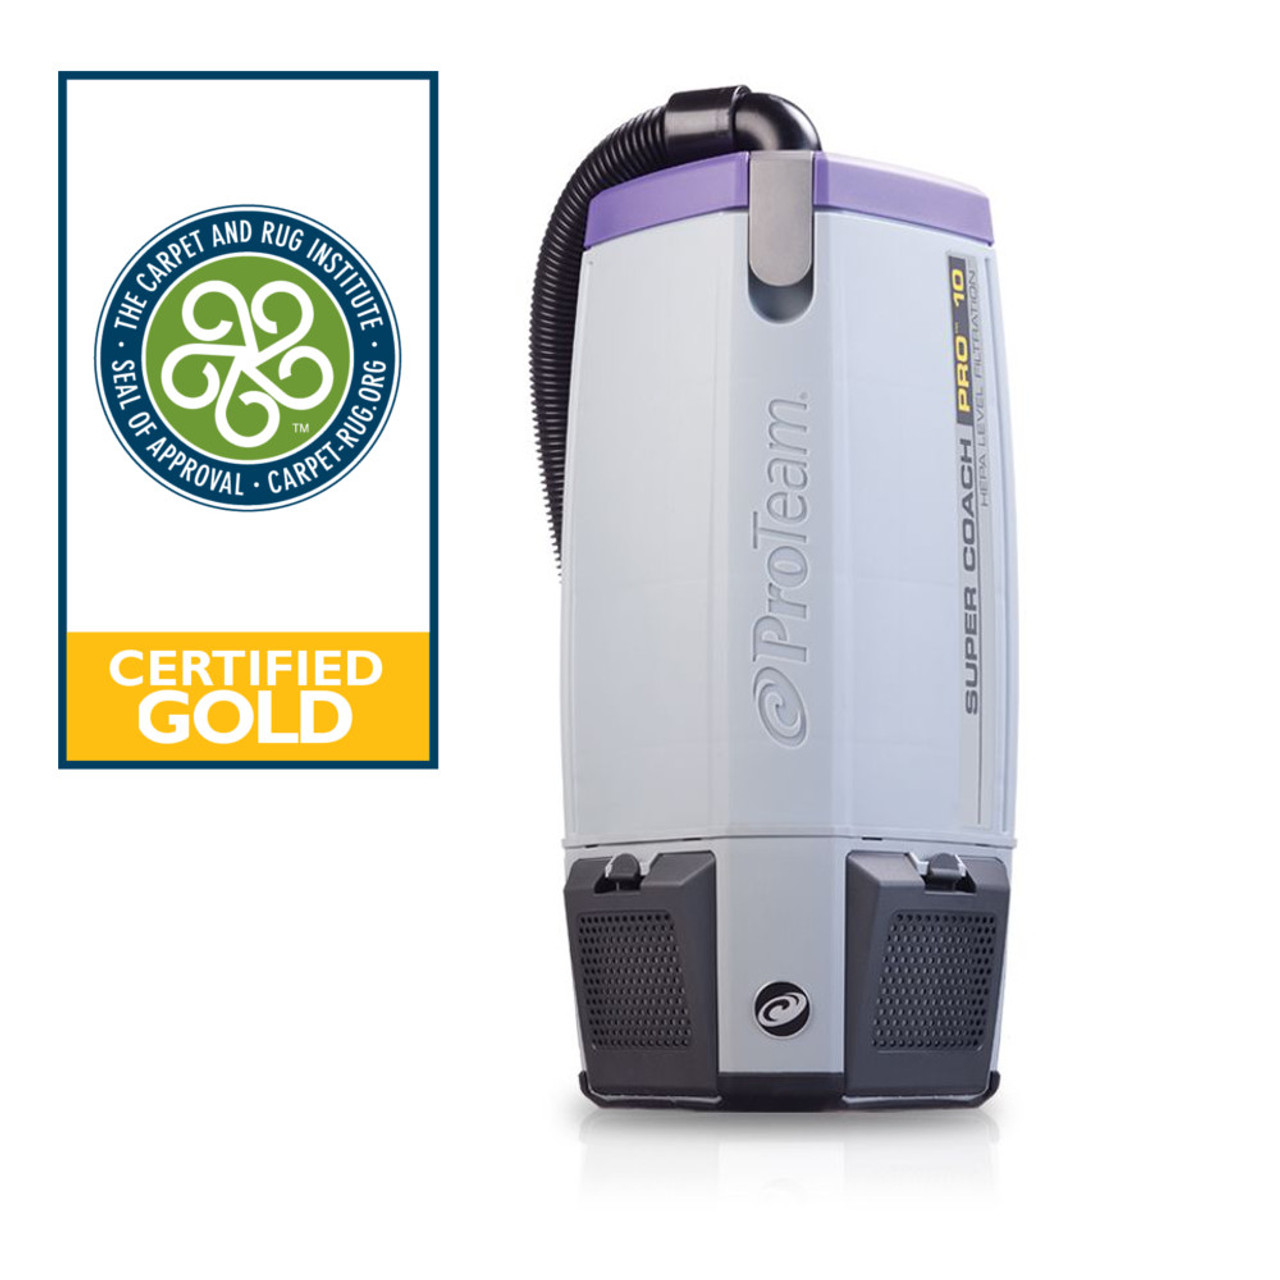 The Super Coach Pro 10  is a powerful backpack vaccum with 10 qt. capacity and is Gold certified for 99.9% efficiency in picking up particulates.